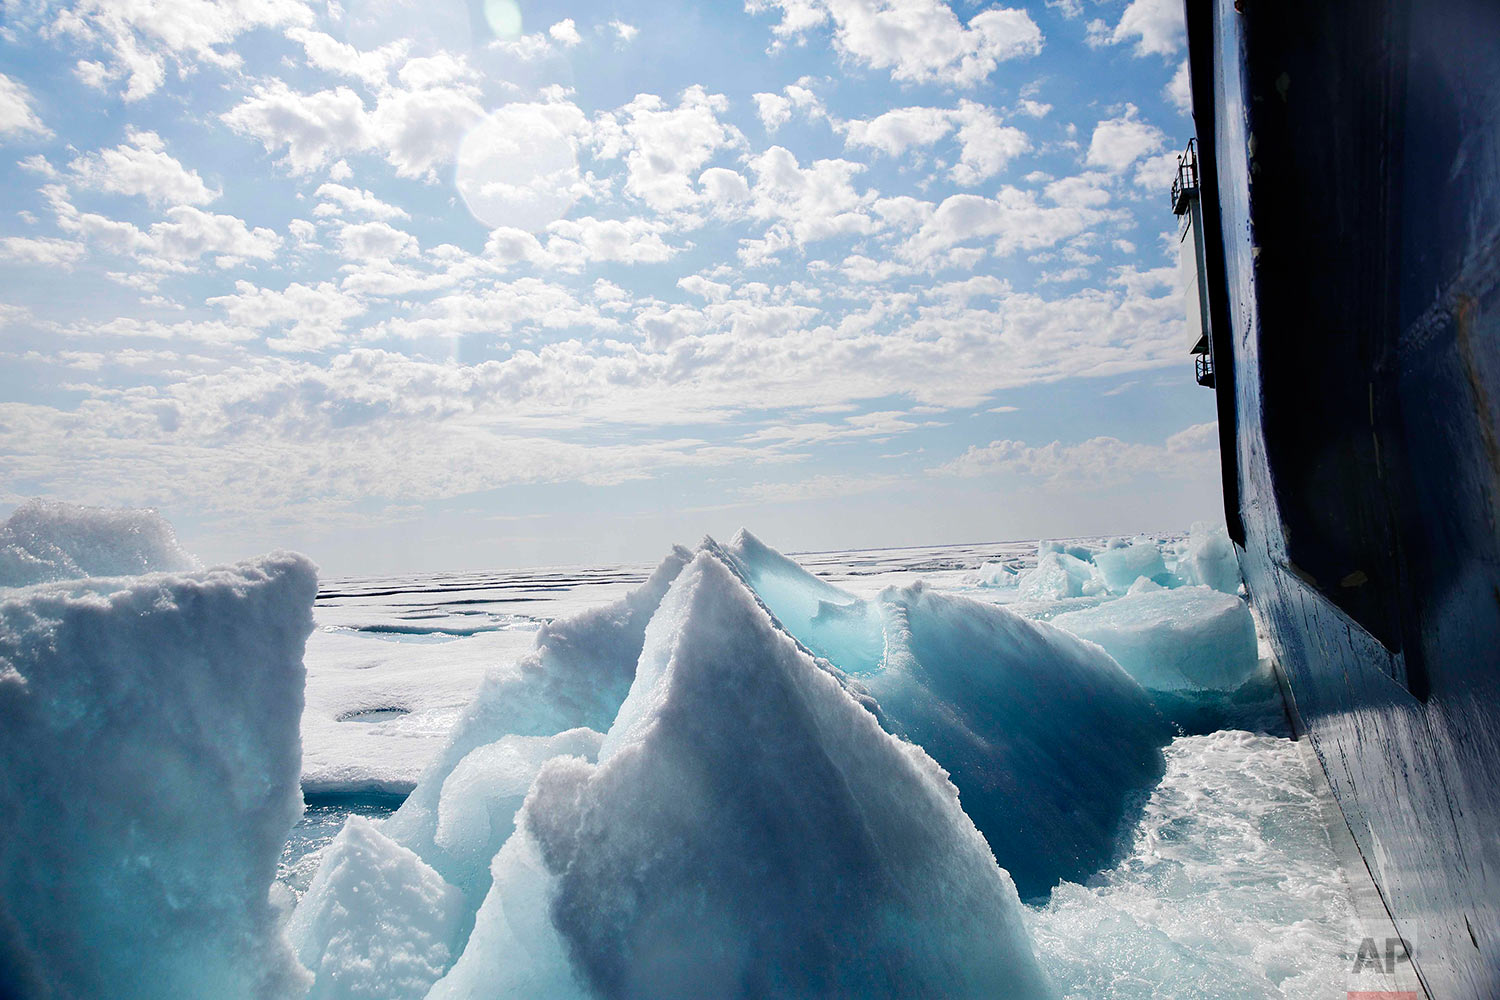 Broken sea ice emerges from under the hull of the Finnish icebreaker MSV Nordica as it sails through the Franklin Strait while traversing the Arctic's Northwest Passage, Saturday, July 22, 2017. Sea ice forms when the top layer of water reaches freezing point, usually around the start of October. As temperatures continue to fall this first-year ice grows downward until it is several feet thick. If the ice survives the following summer melt it becomes second-year ice. Another cycle and it becomes multi-year ice, which is the toughest kind. (AP Photo/David Goldman)